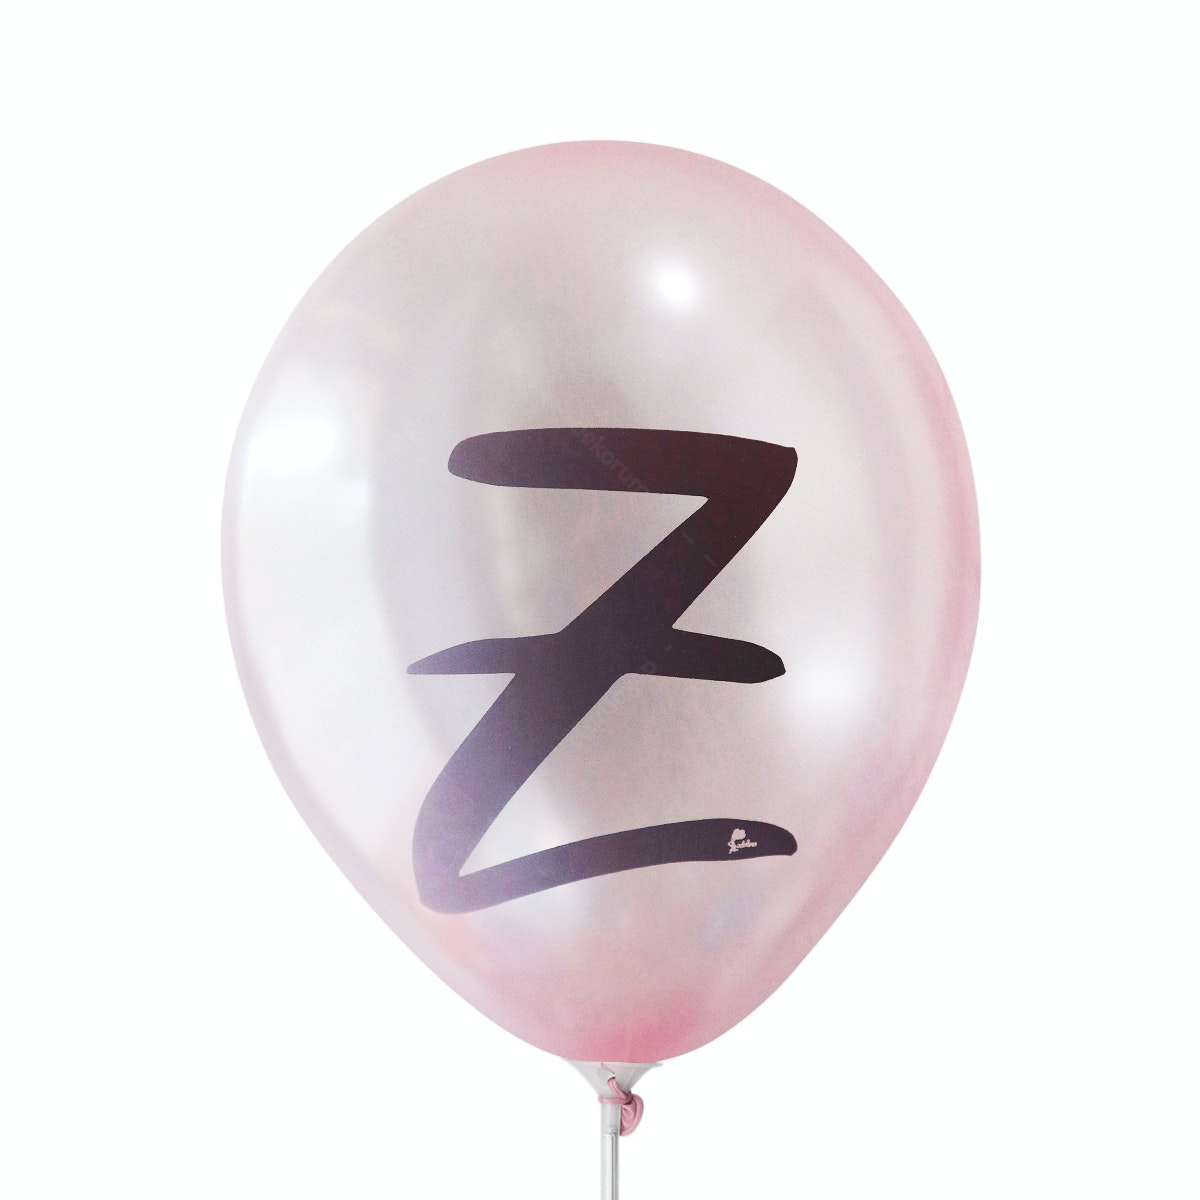 Adalima Balloon Balon Latex Alphabet Metallic Pink Qq